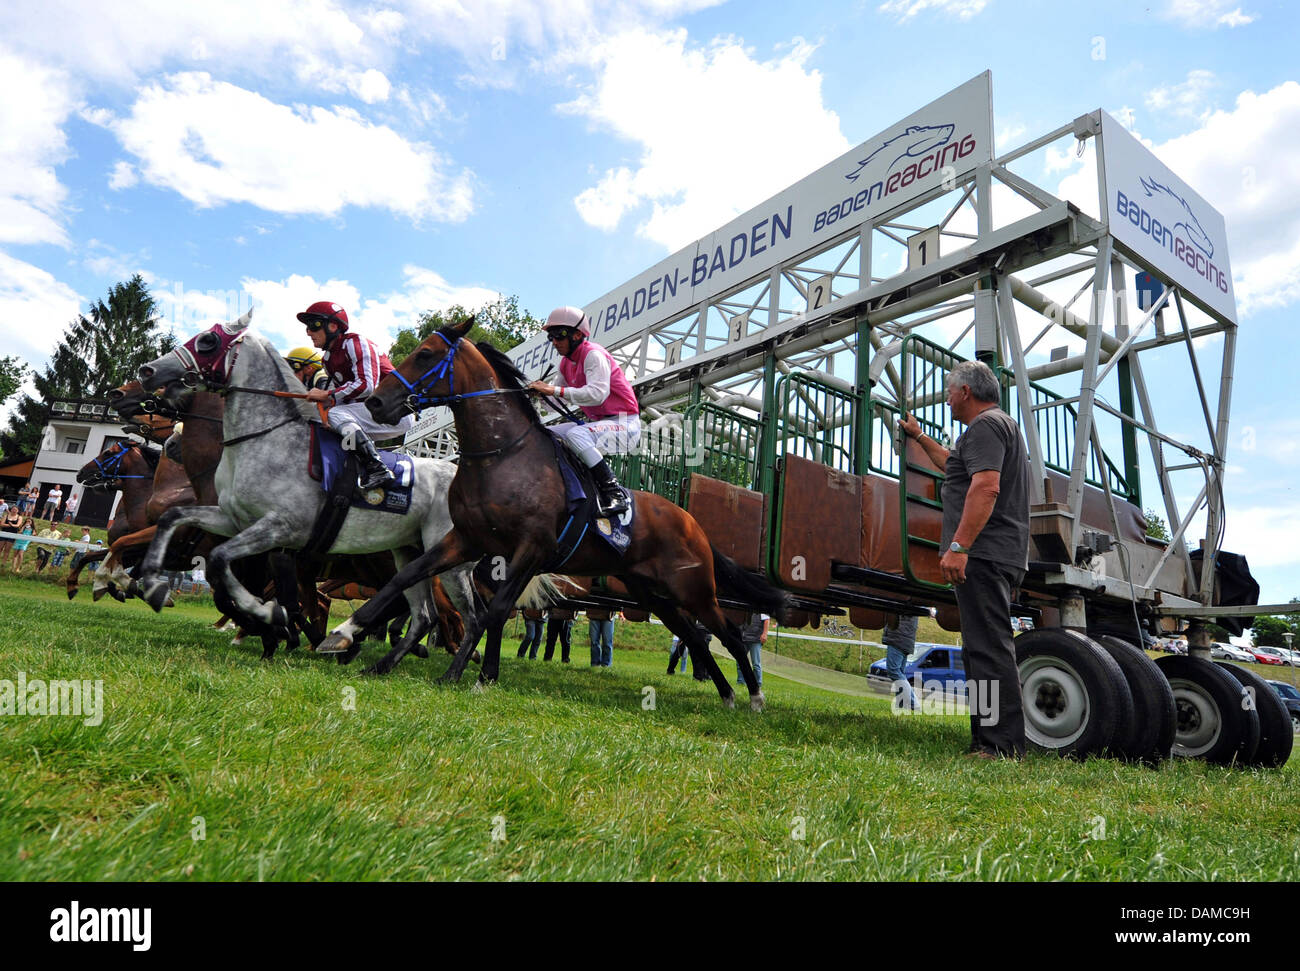 A group of horse riders start a race at the horse race track Iffezheim on the last day of the so-called Spring Meeting - Stock Image